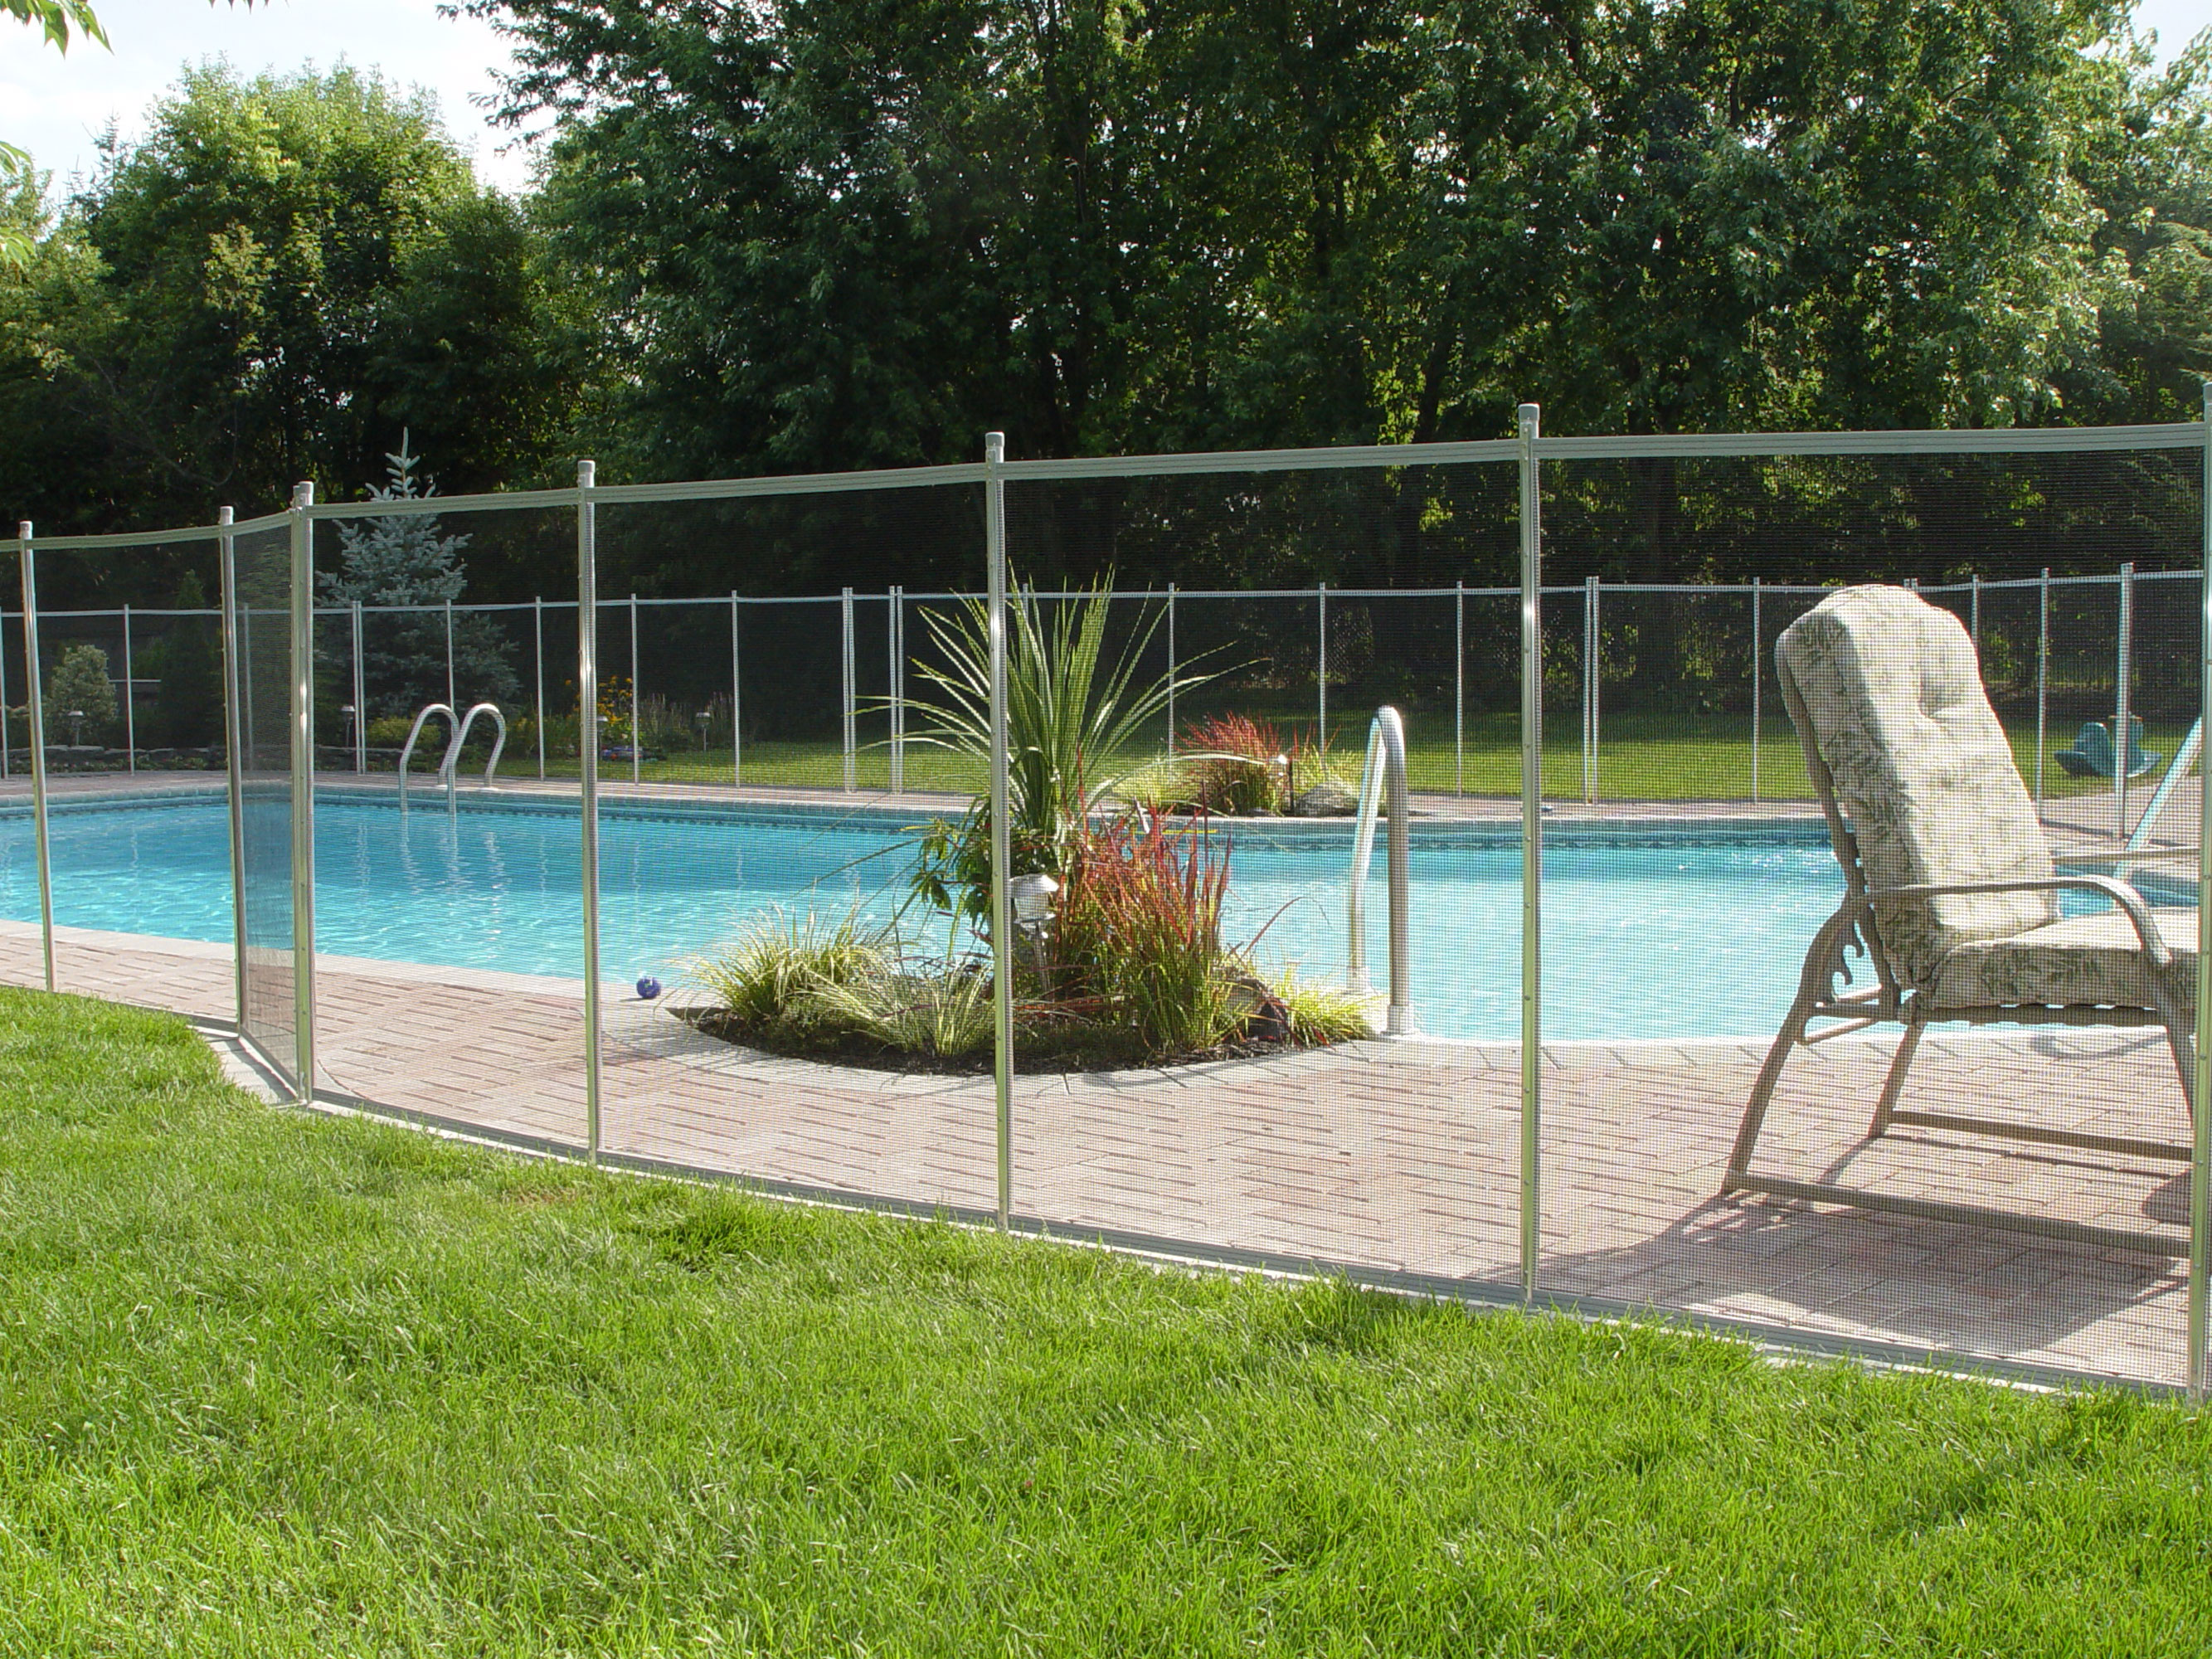 backyard above ground pool landscaping ideas. 10 pool deck and ...